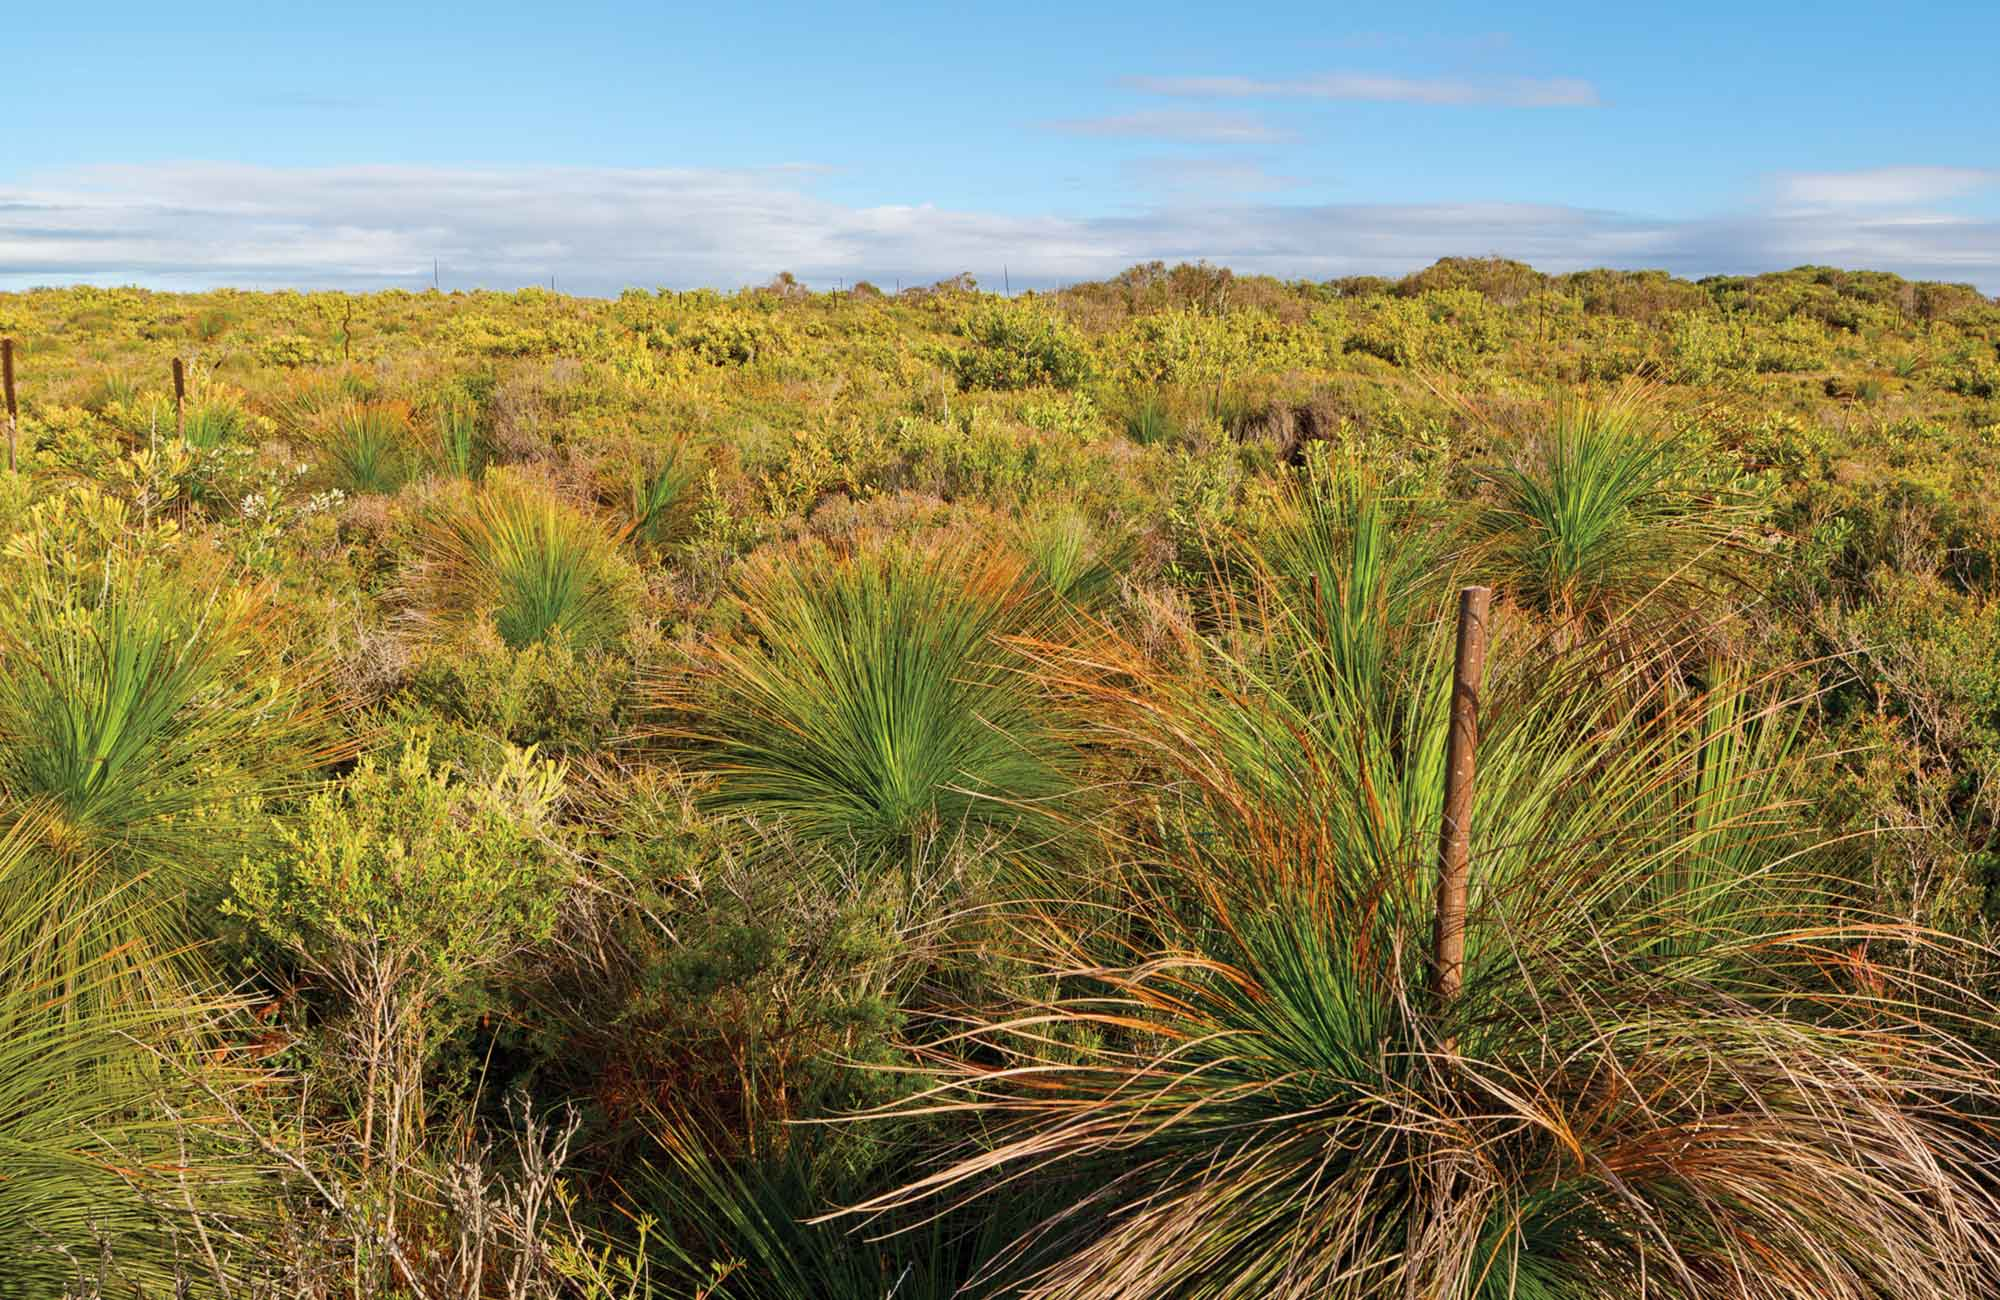 A field of grass trees. Photo: Rob Cleary